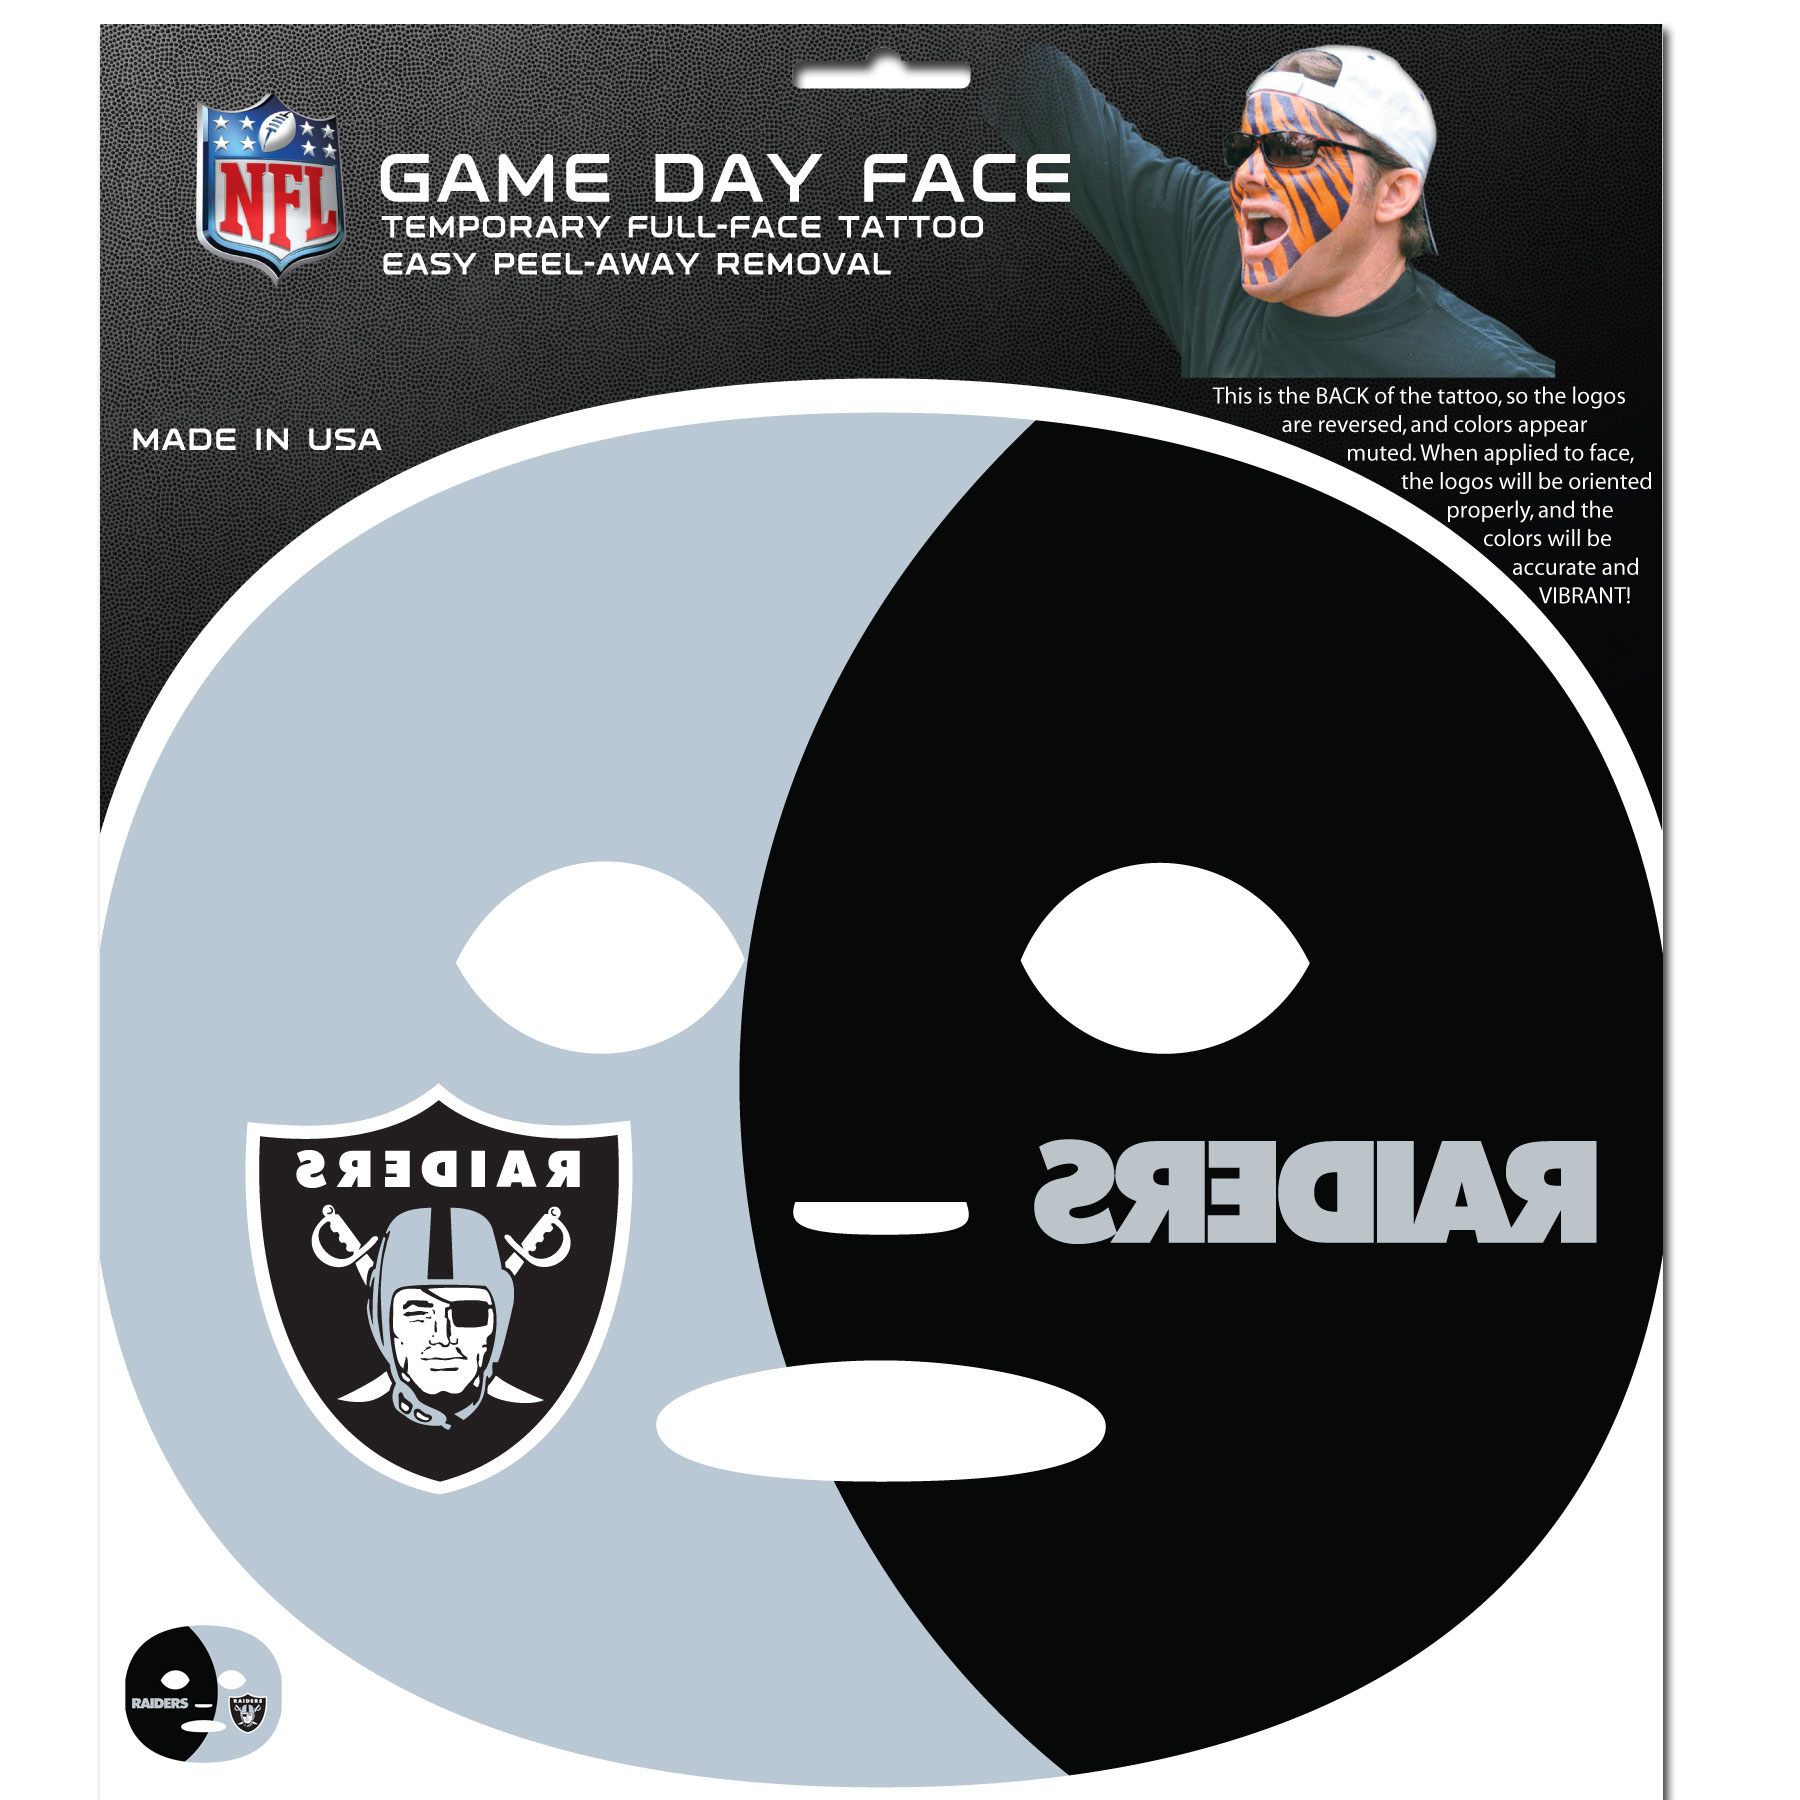 Oakland Raiders Set of 4 Game Day Faces - No better way to show your team pride than by painting your face. Siskiyou's Game Day Face Temporary Tattoo isn't your typical face paint. It is a water based application that doesn't smudge, smear or sweat off while you're wearing it and easily peels off after you're done celebrating your team's big Win! The temporary tattoo is large enough to trim down to fit your face. Our Game Day Face Temporary Tattoo's are fun for fans of all ages. You may have seen our product before, these are the same Temporary Face Tattoos as pitched on ABC's Shark Tank.